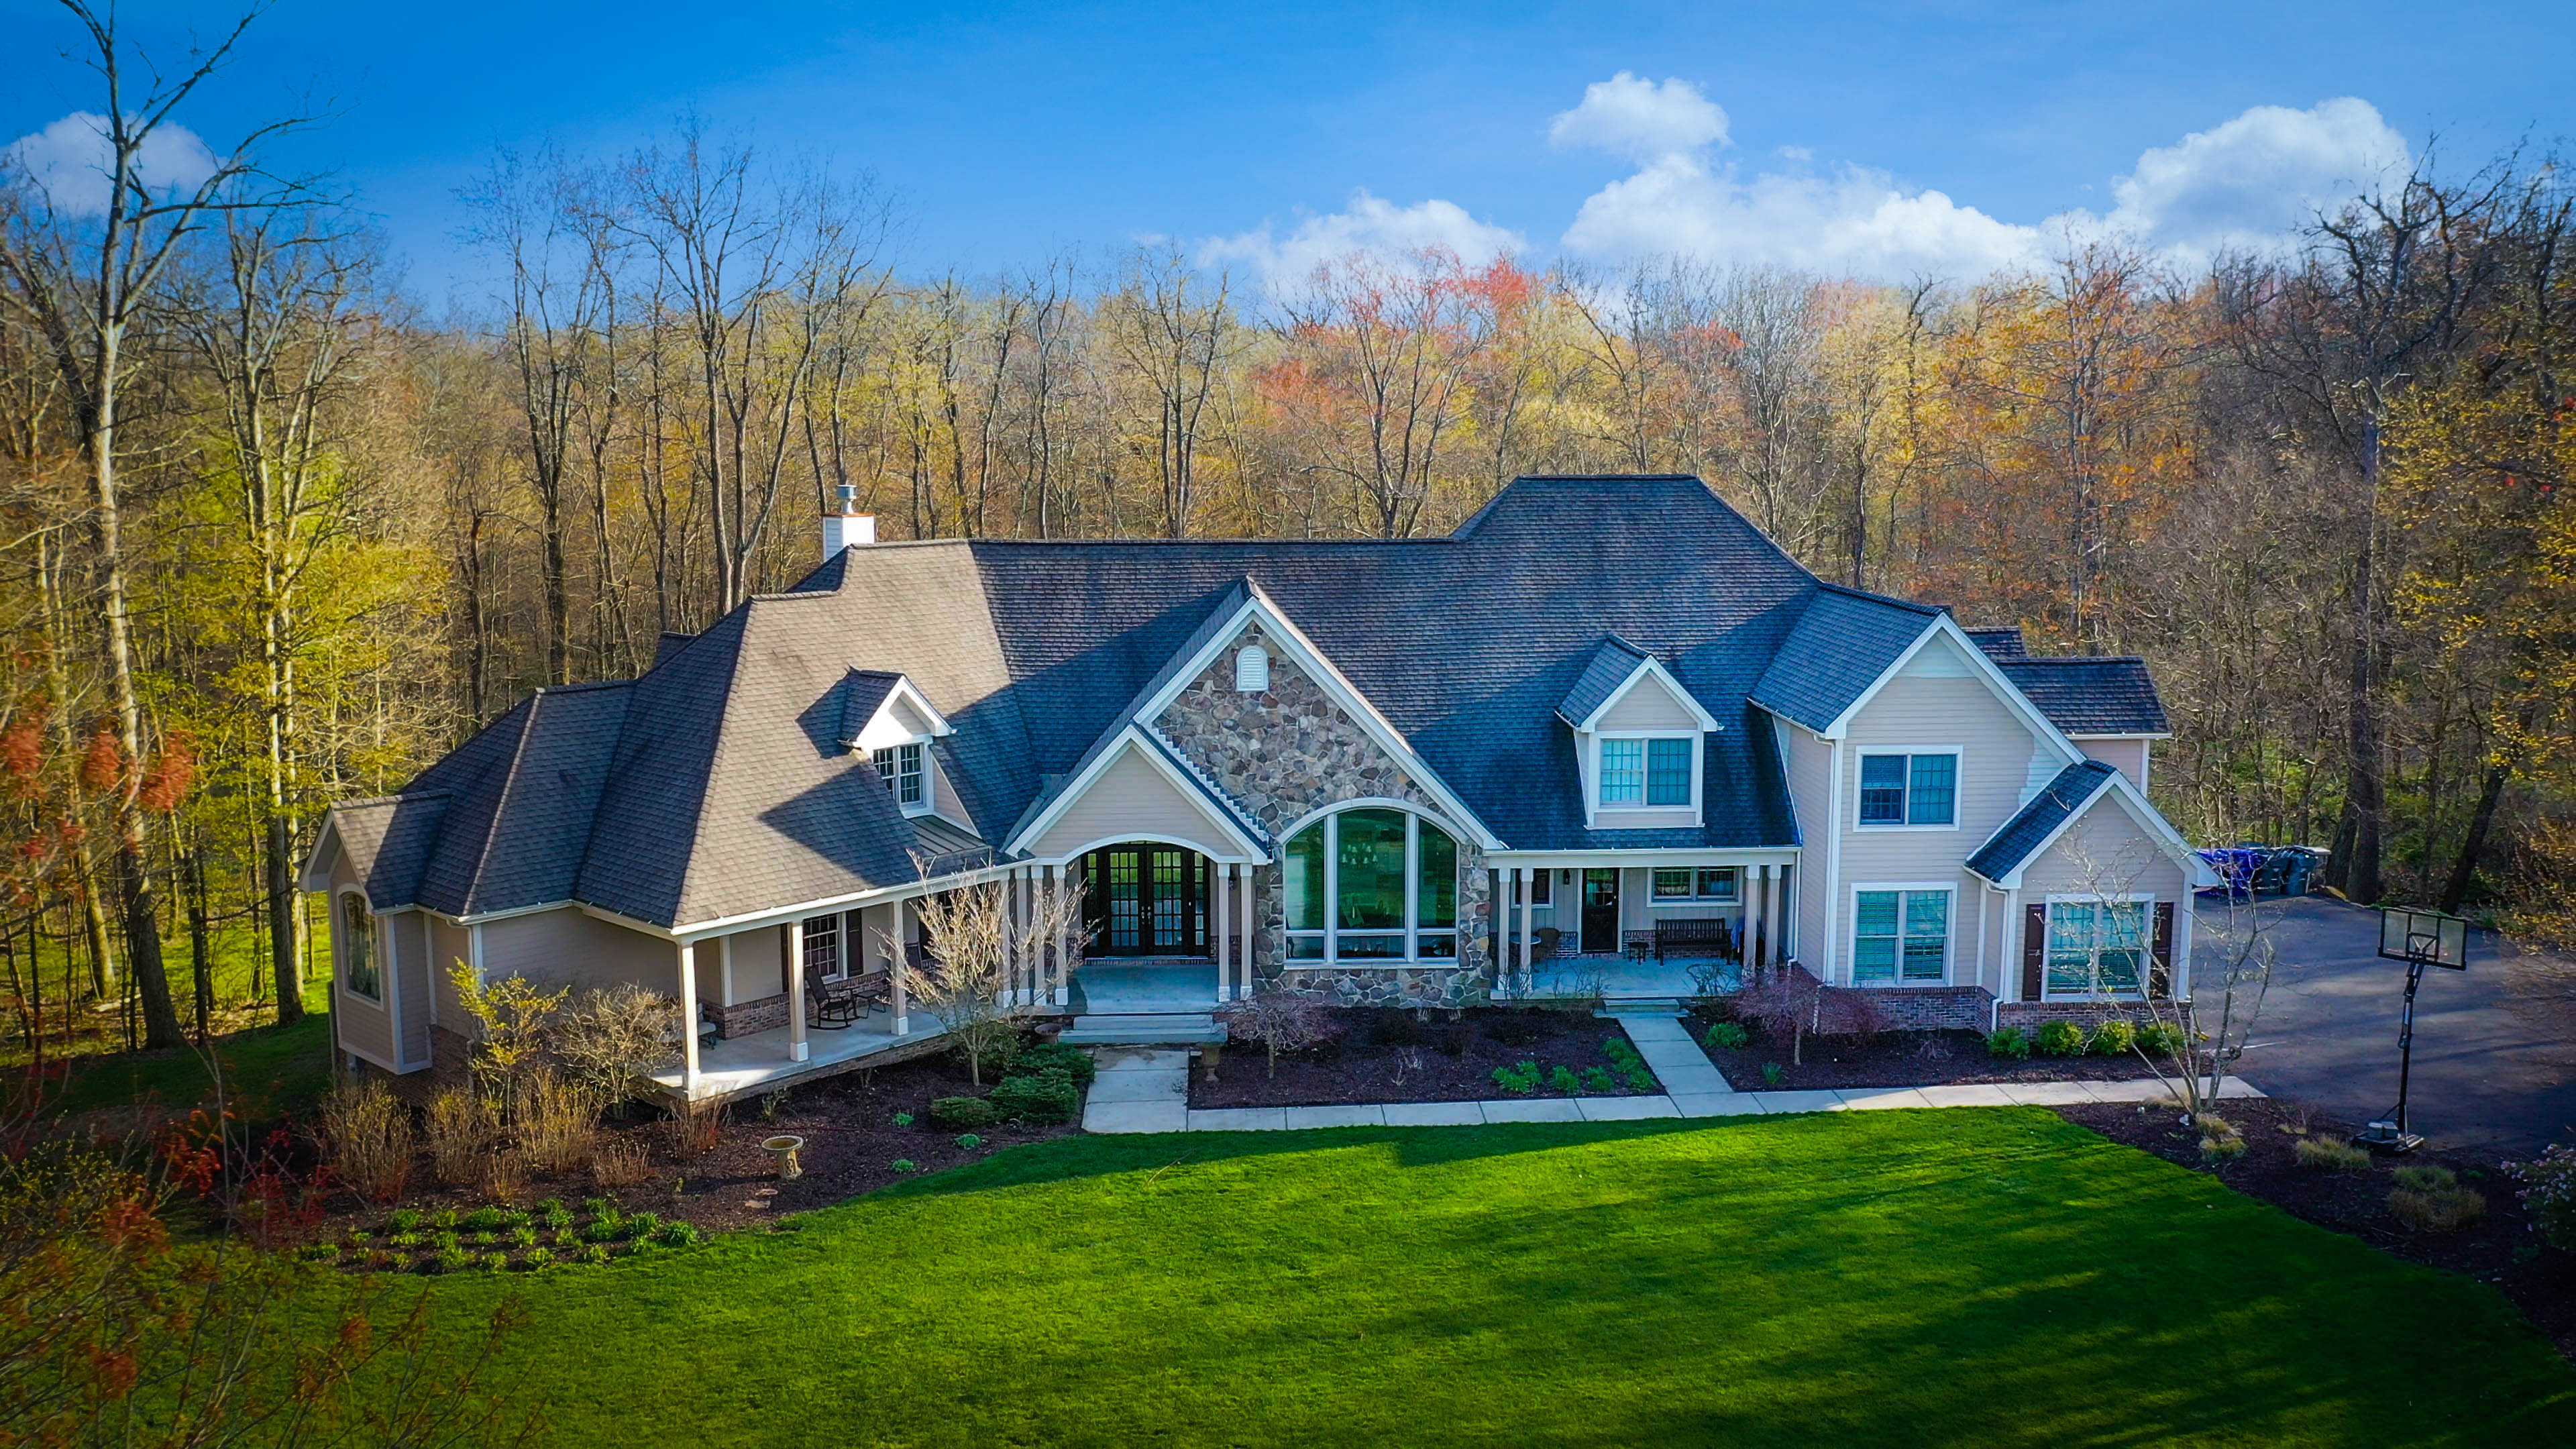 RESIDENTIAL AERIAL PHOTOGRAPHY